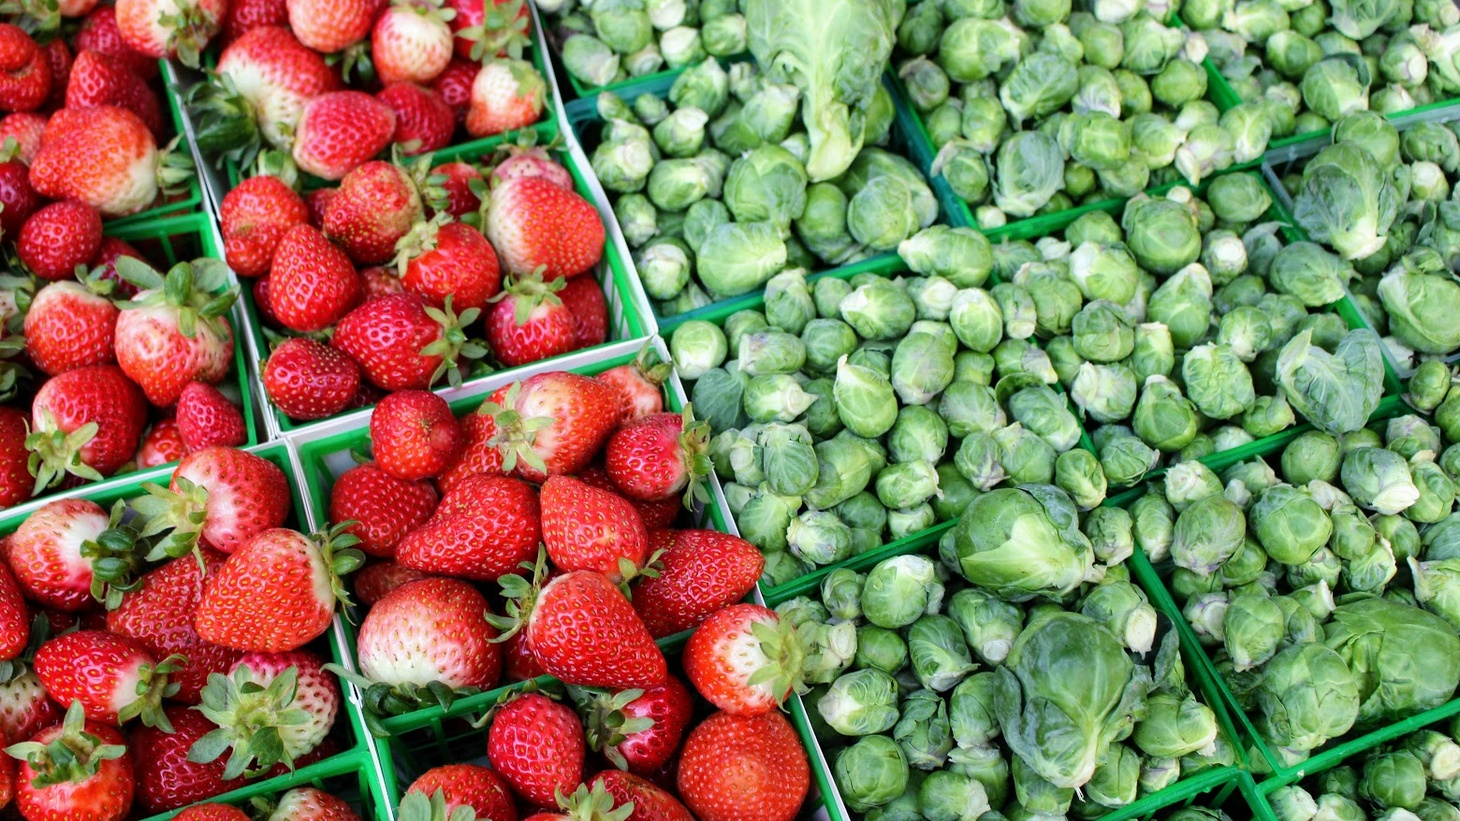 Strawberries and Brussel sprouts, which Frecker picks while they're still small